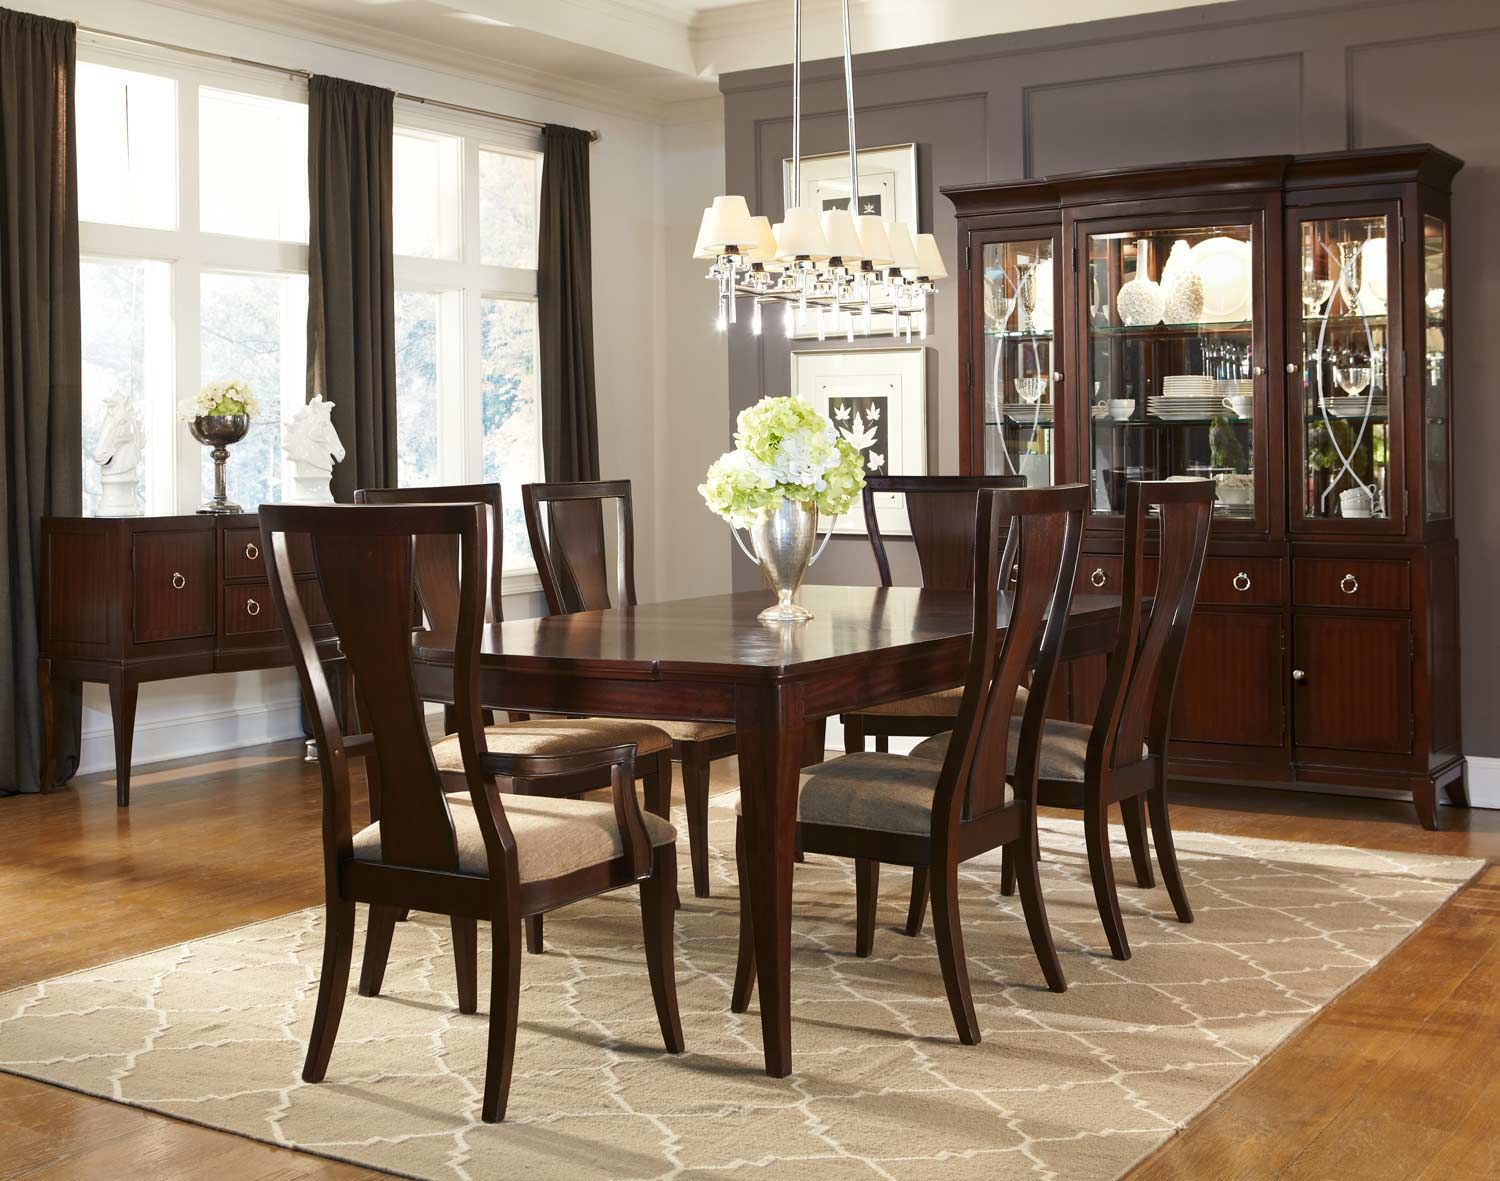 Legacy Classic Laurel Heights Dining Set Dining Room Style Dining Room Furniture Dining Table Legs Dining rooms legacy classic